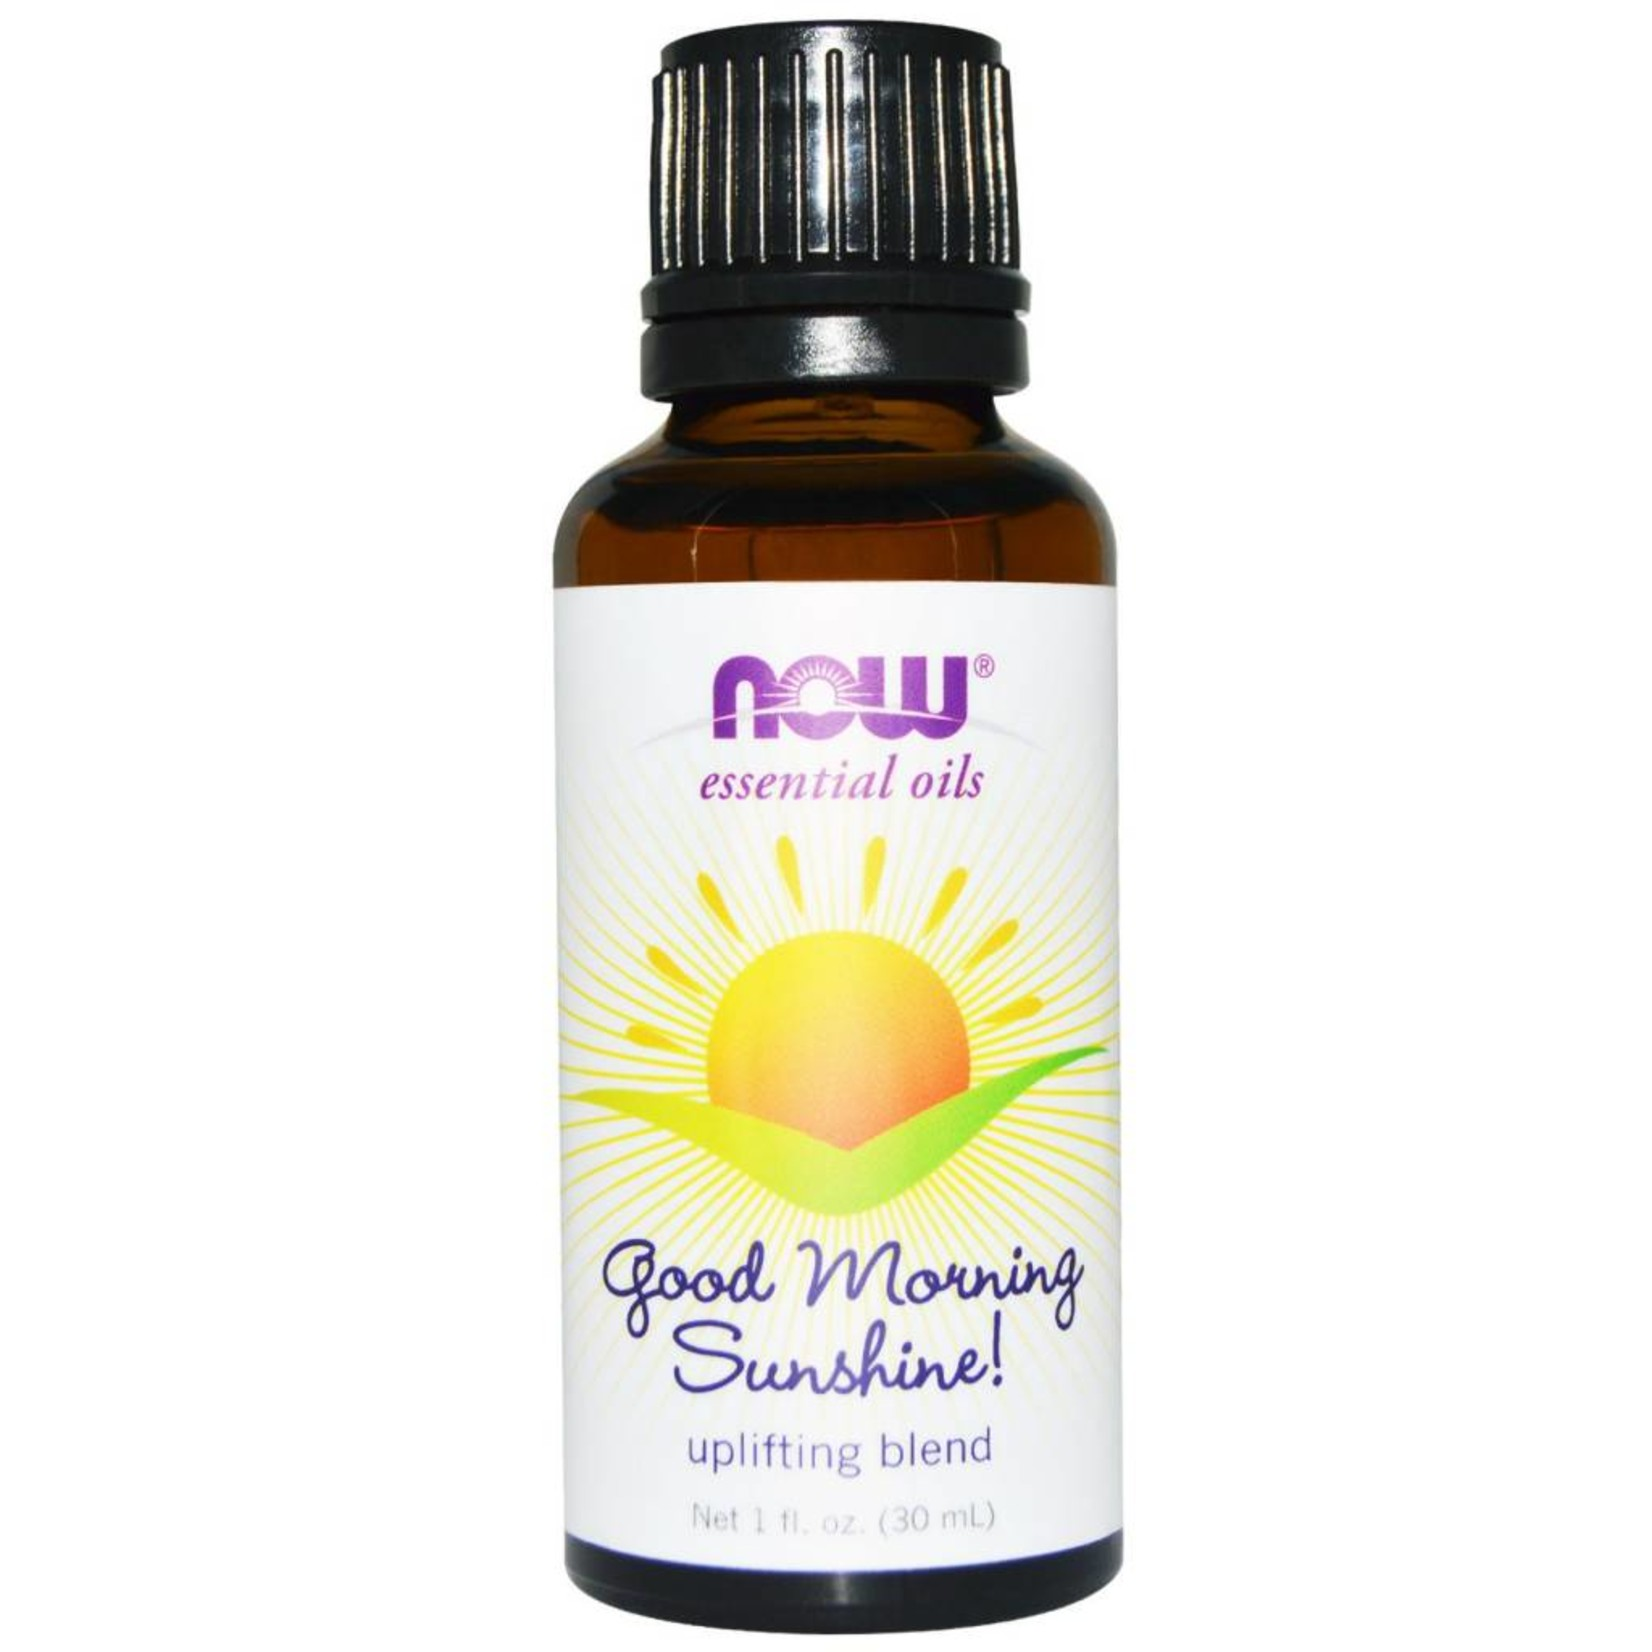 NOW NOW Morning Sunshine EO Blend 30mL